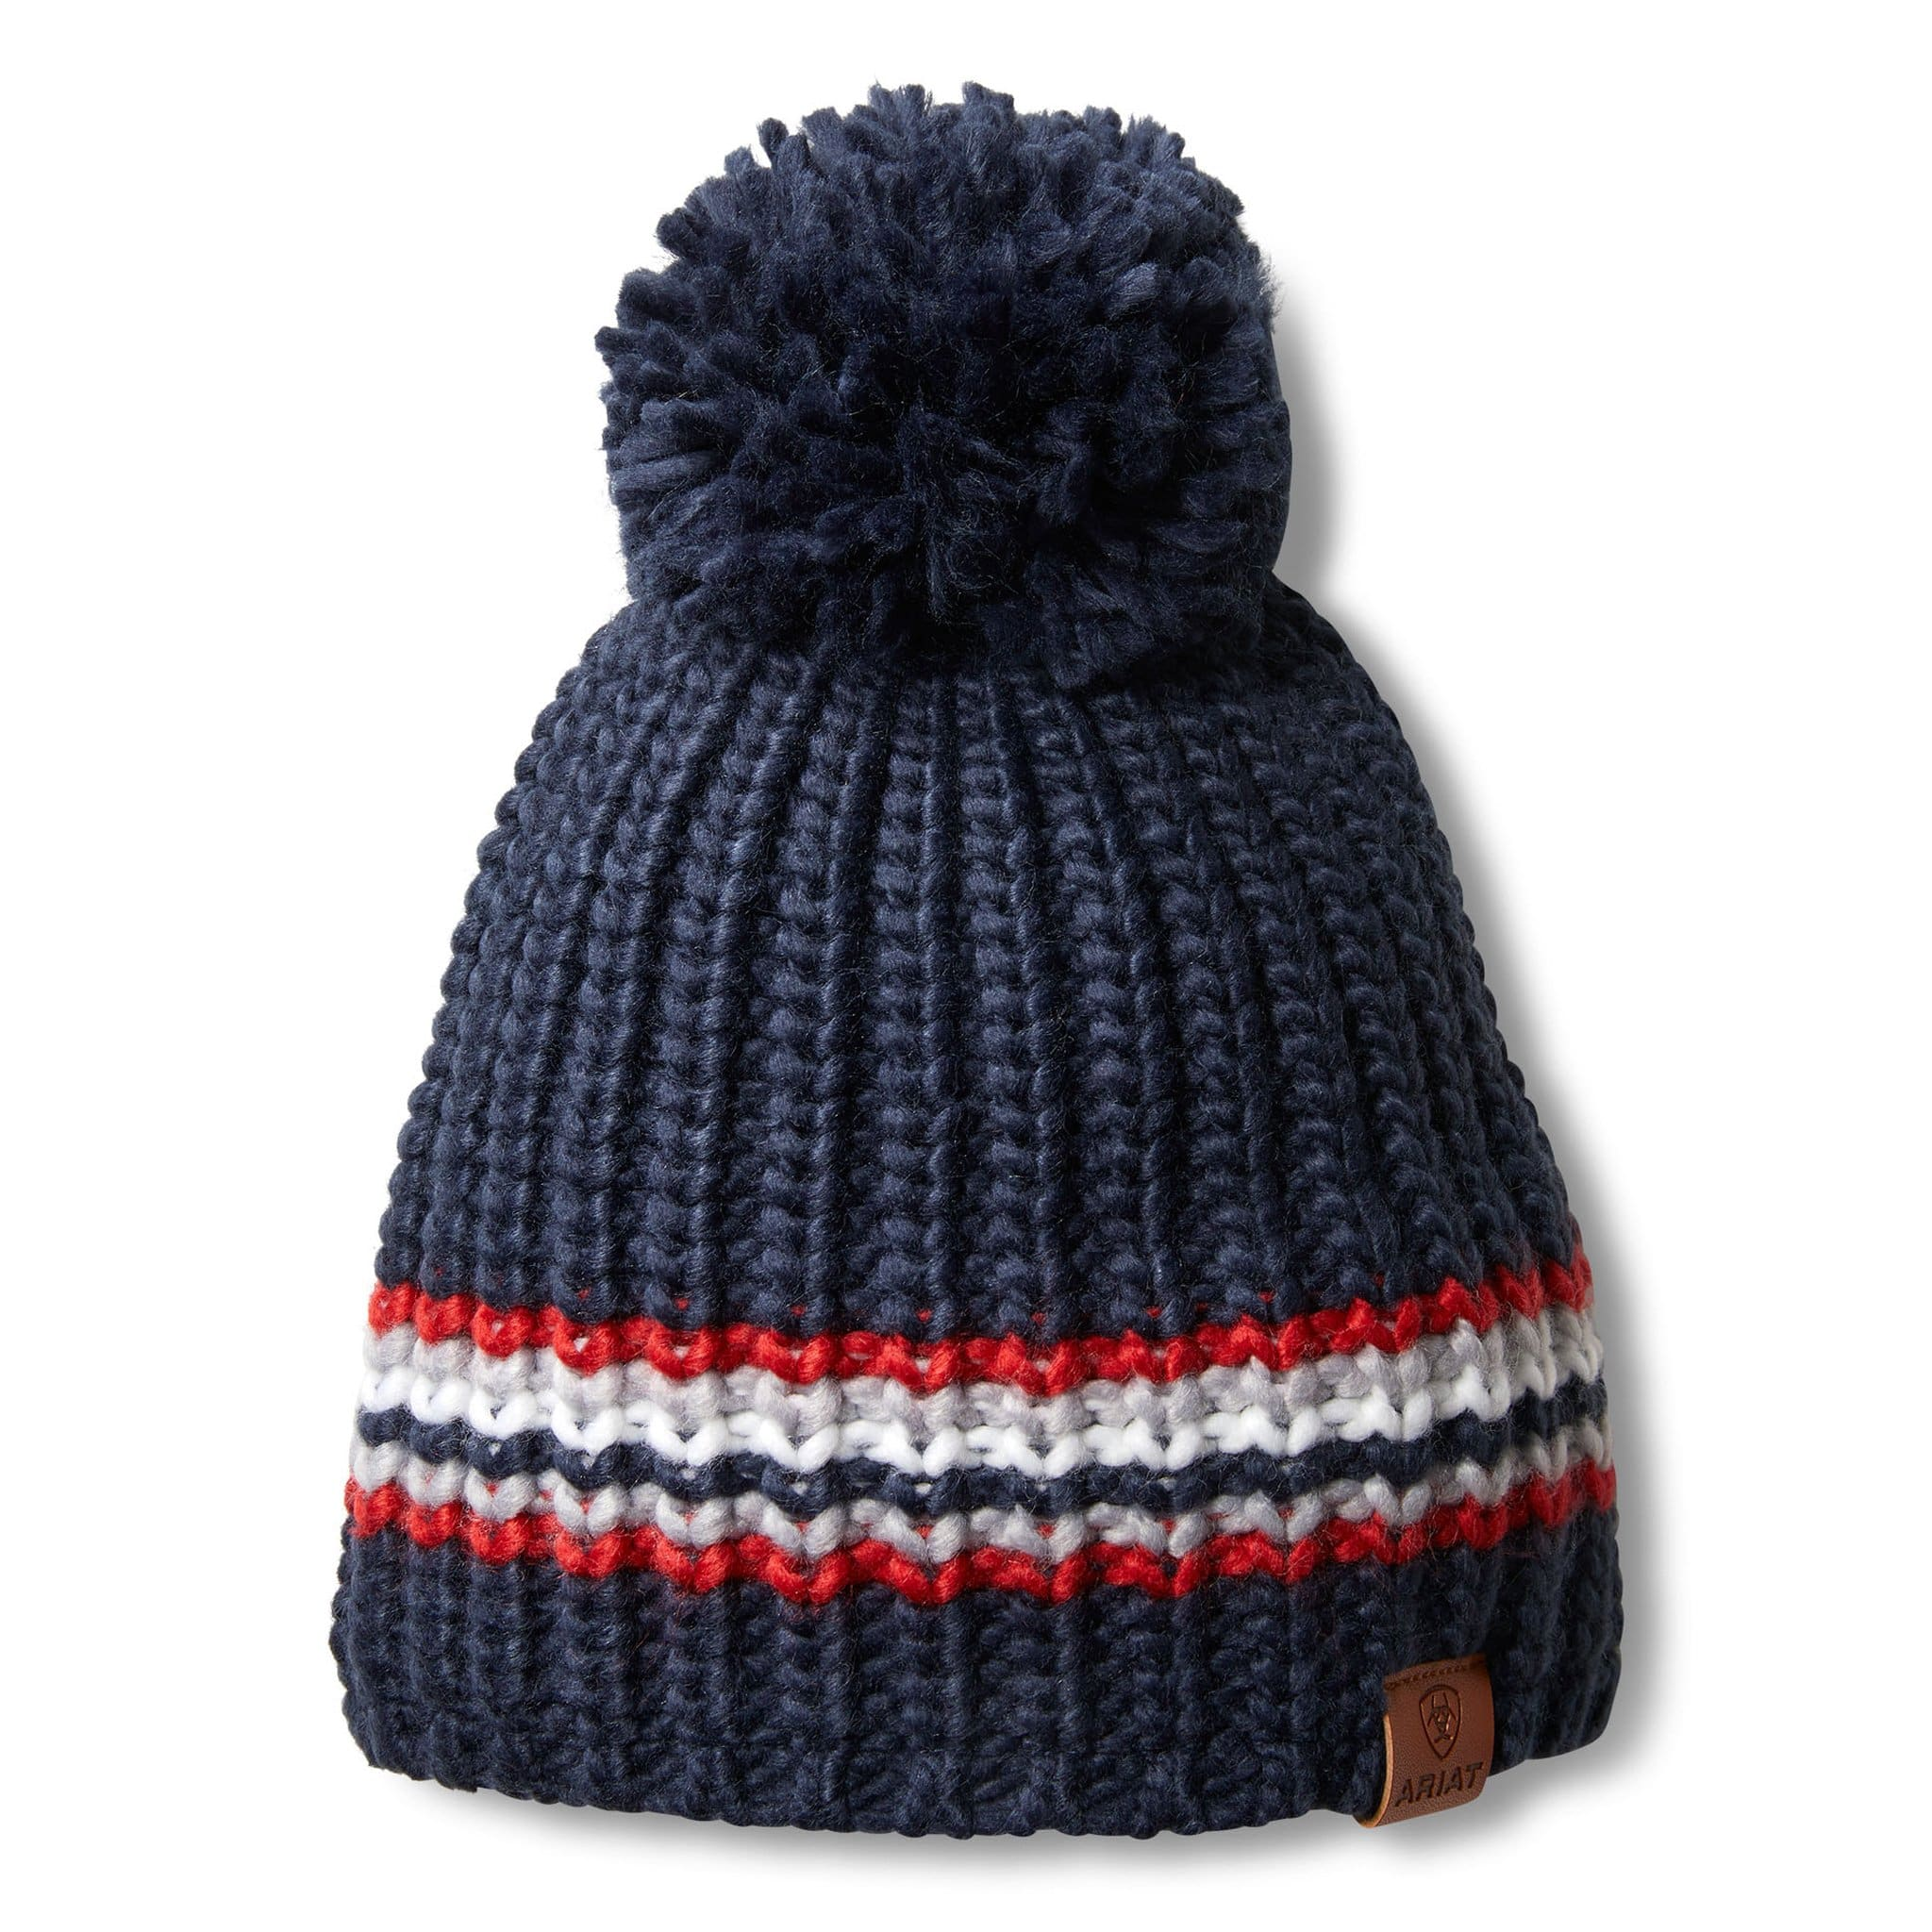 Ariat Unisex Salem Team Stripe Beanie 10033347 Navy, Red and White